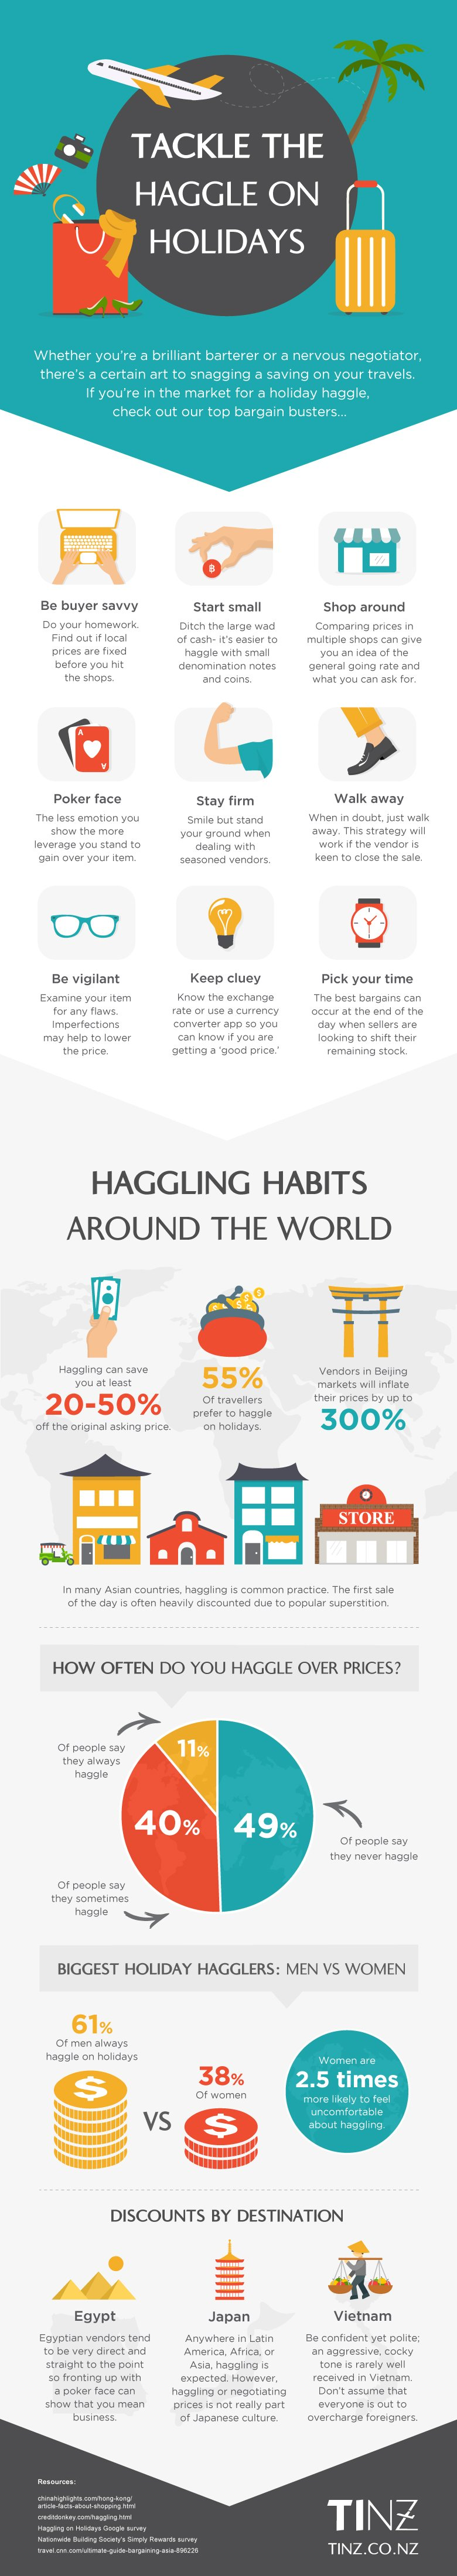 haggling infographic